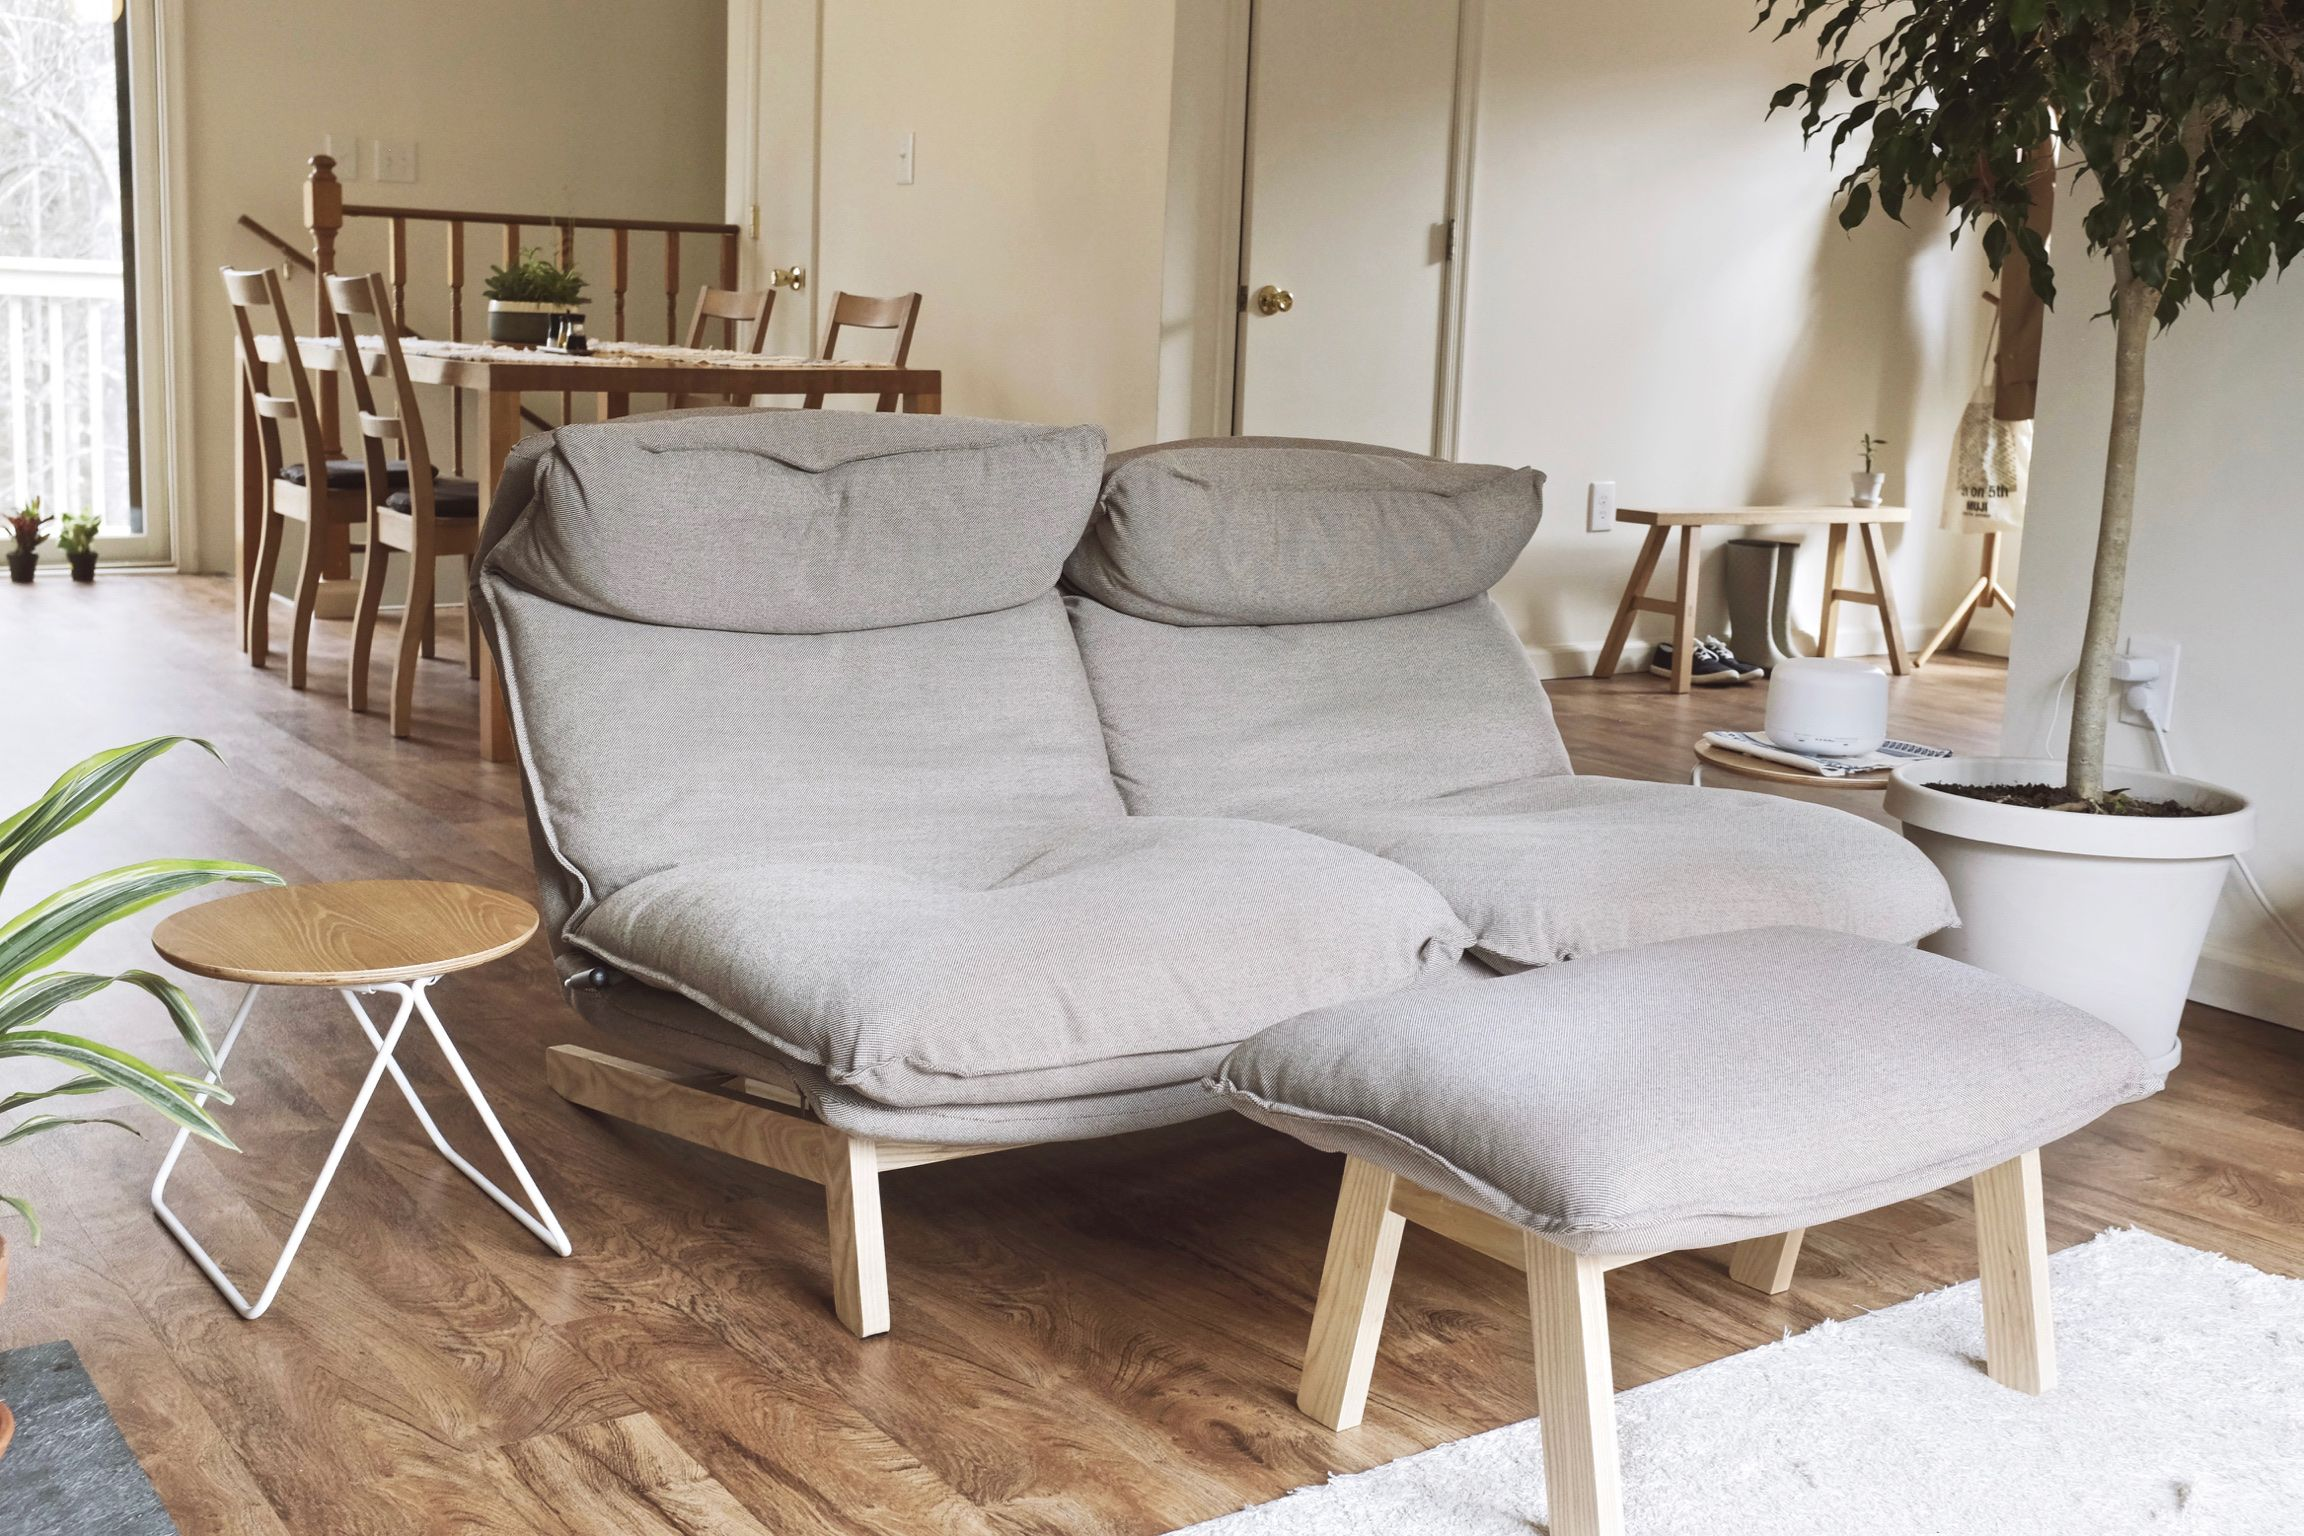 Most comfortable sofa ever - Muji S Reclining Sofa Is The Most Comfortable Piece Of Furniture Ever Invented The Texture Of